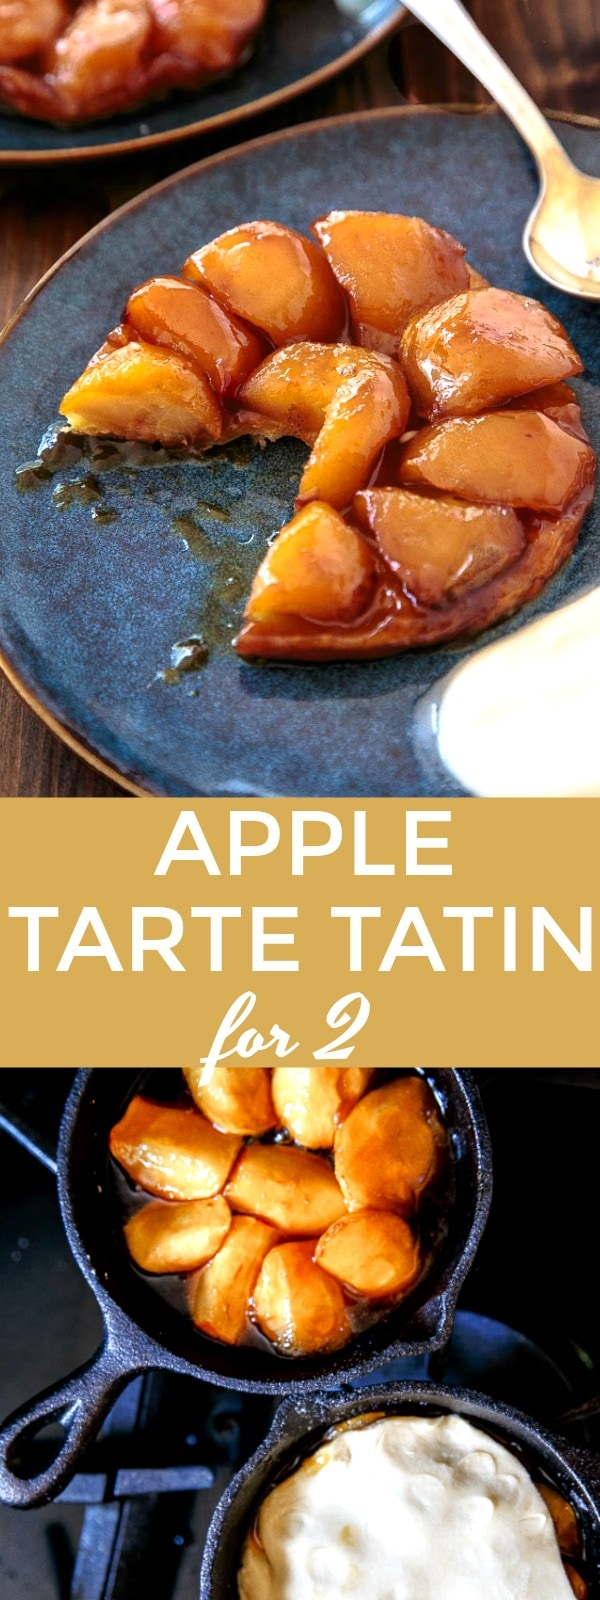 Apple Tarte Tatin for Two. Classic French Apple Tarte Tatin made in a cast iron skillet. Serve two. Best apple desserts. Fall apple desserts.